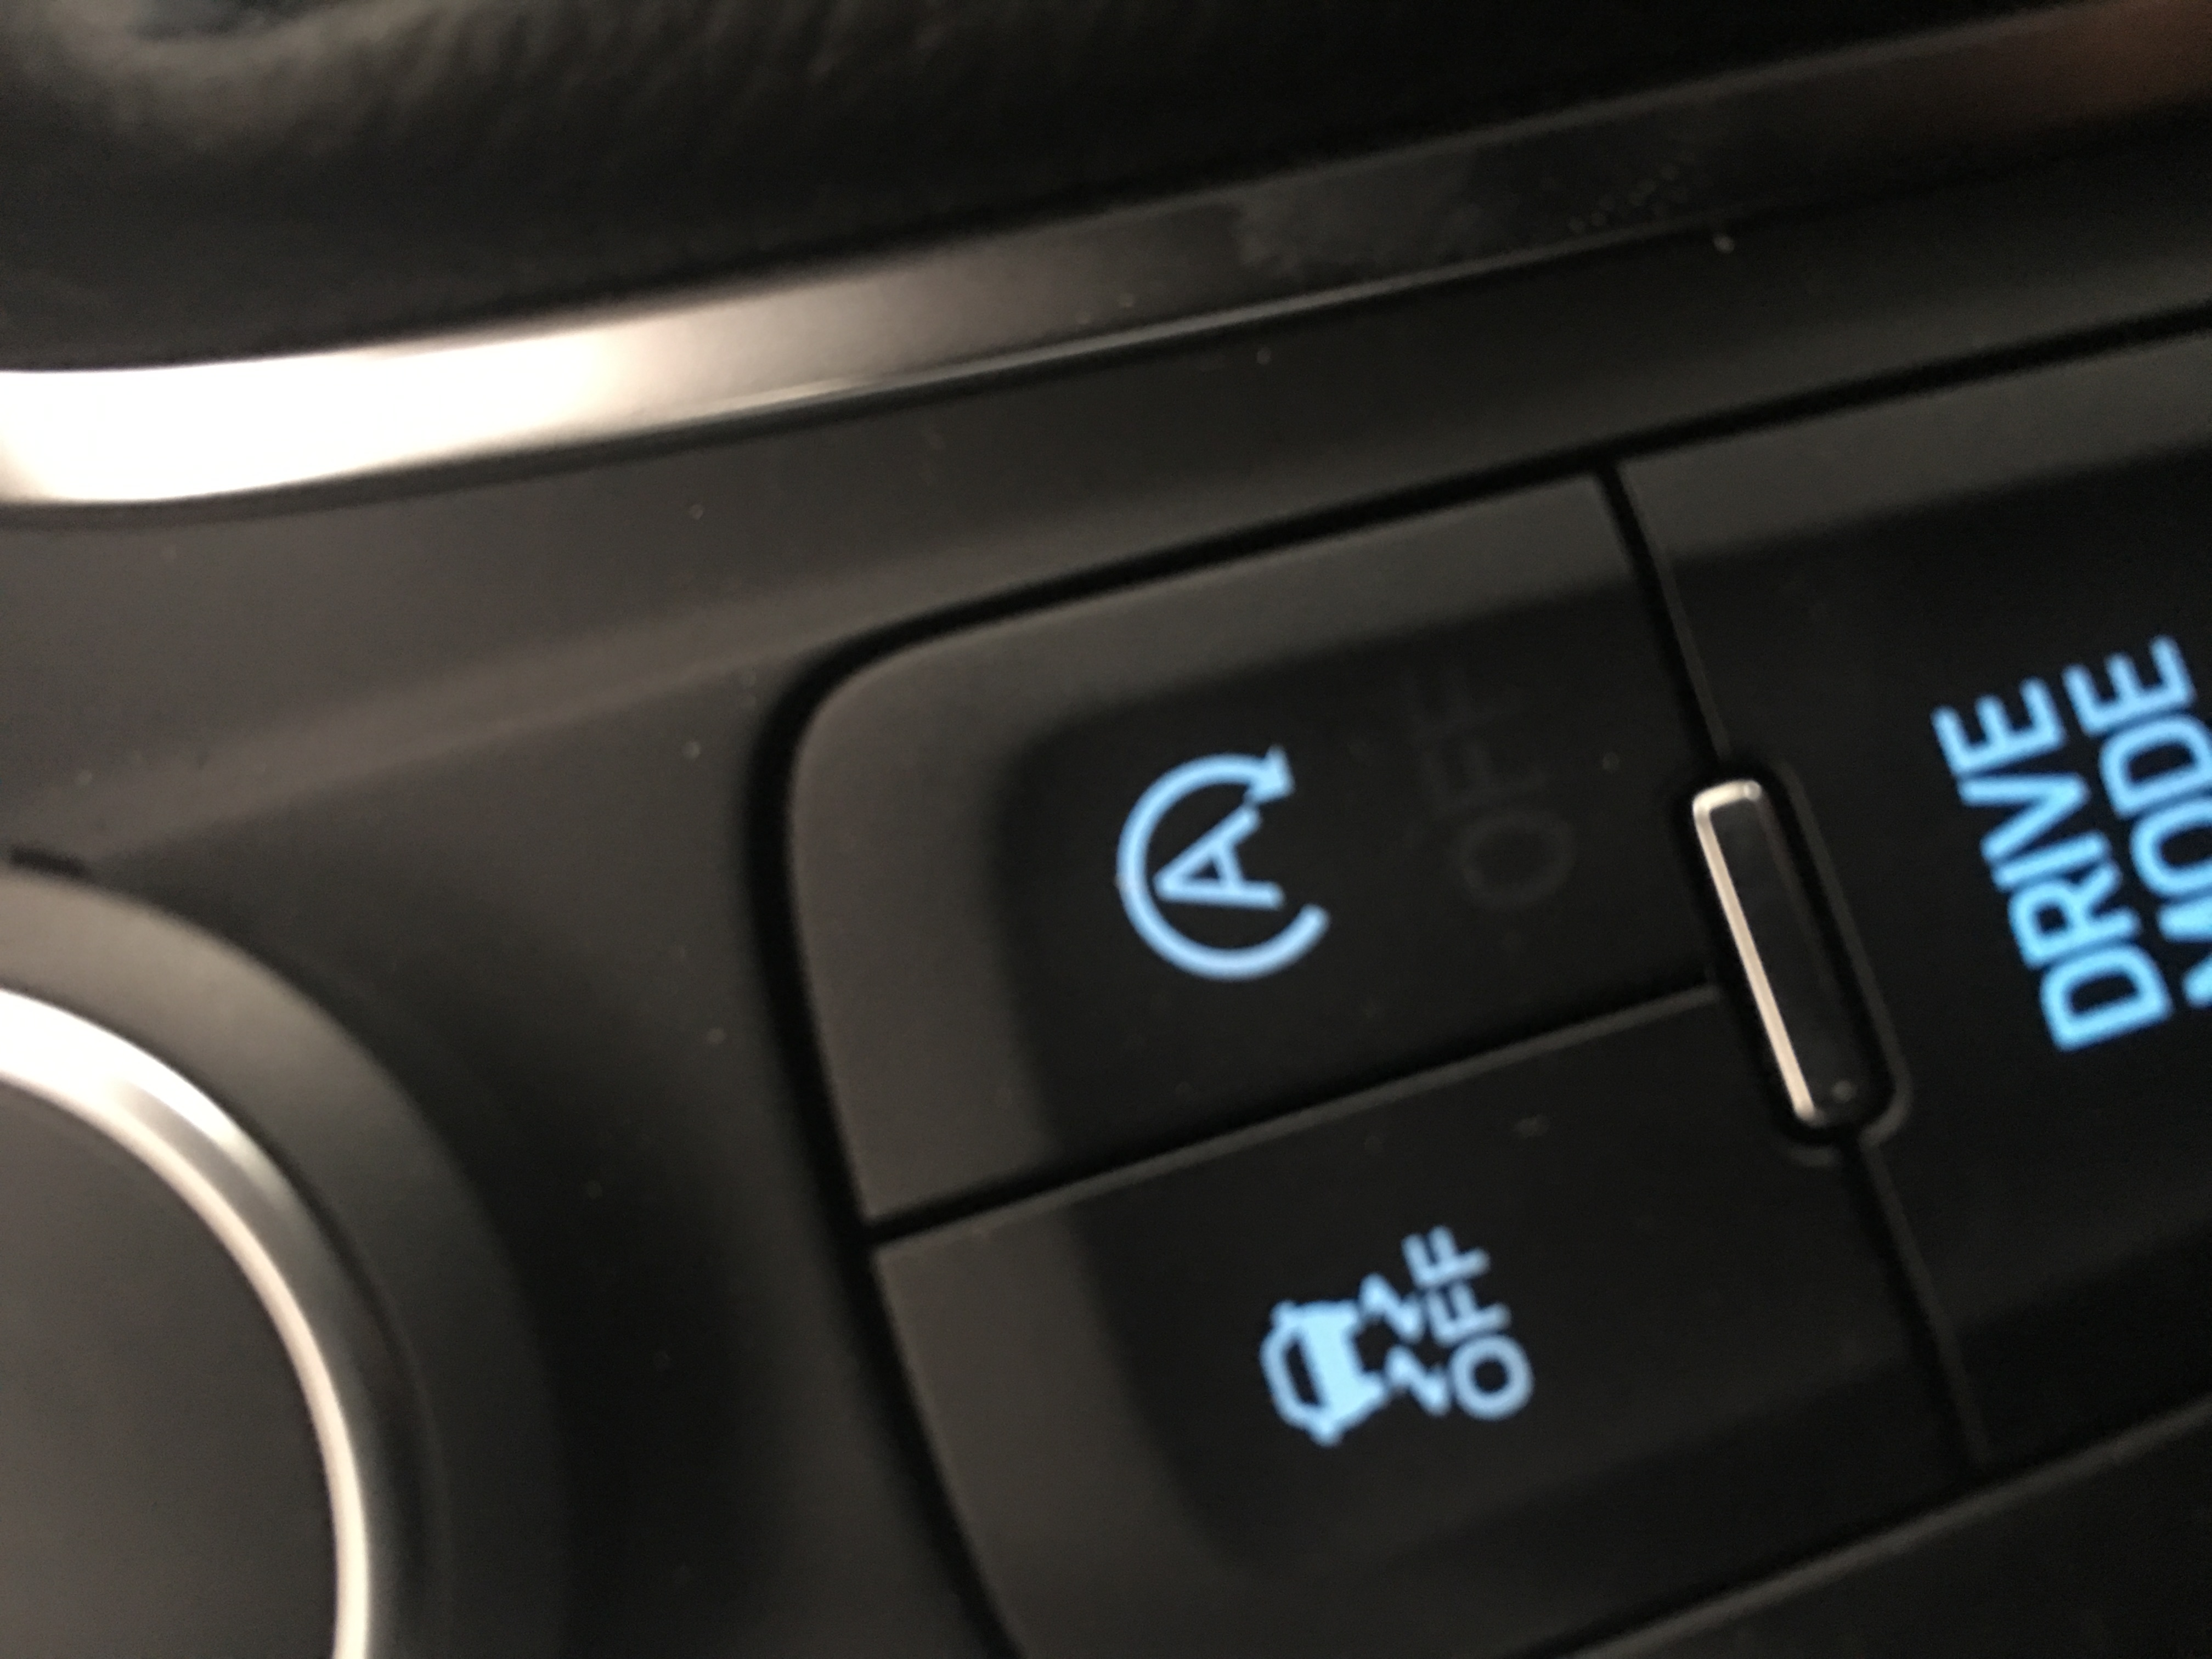 What Is This Button For